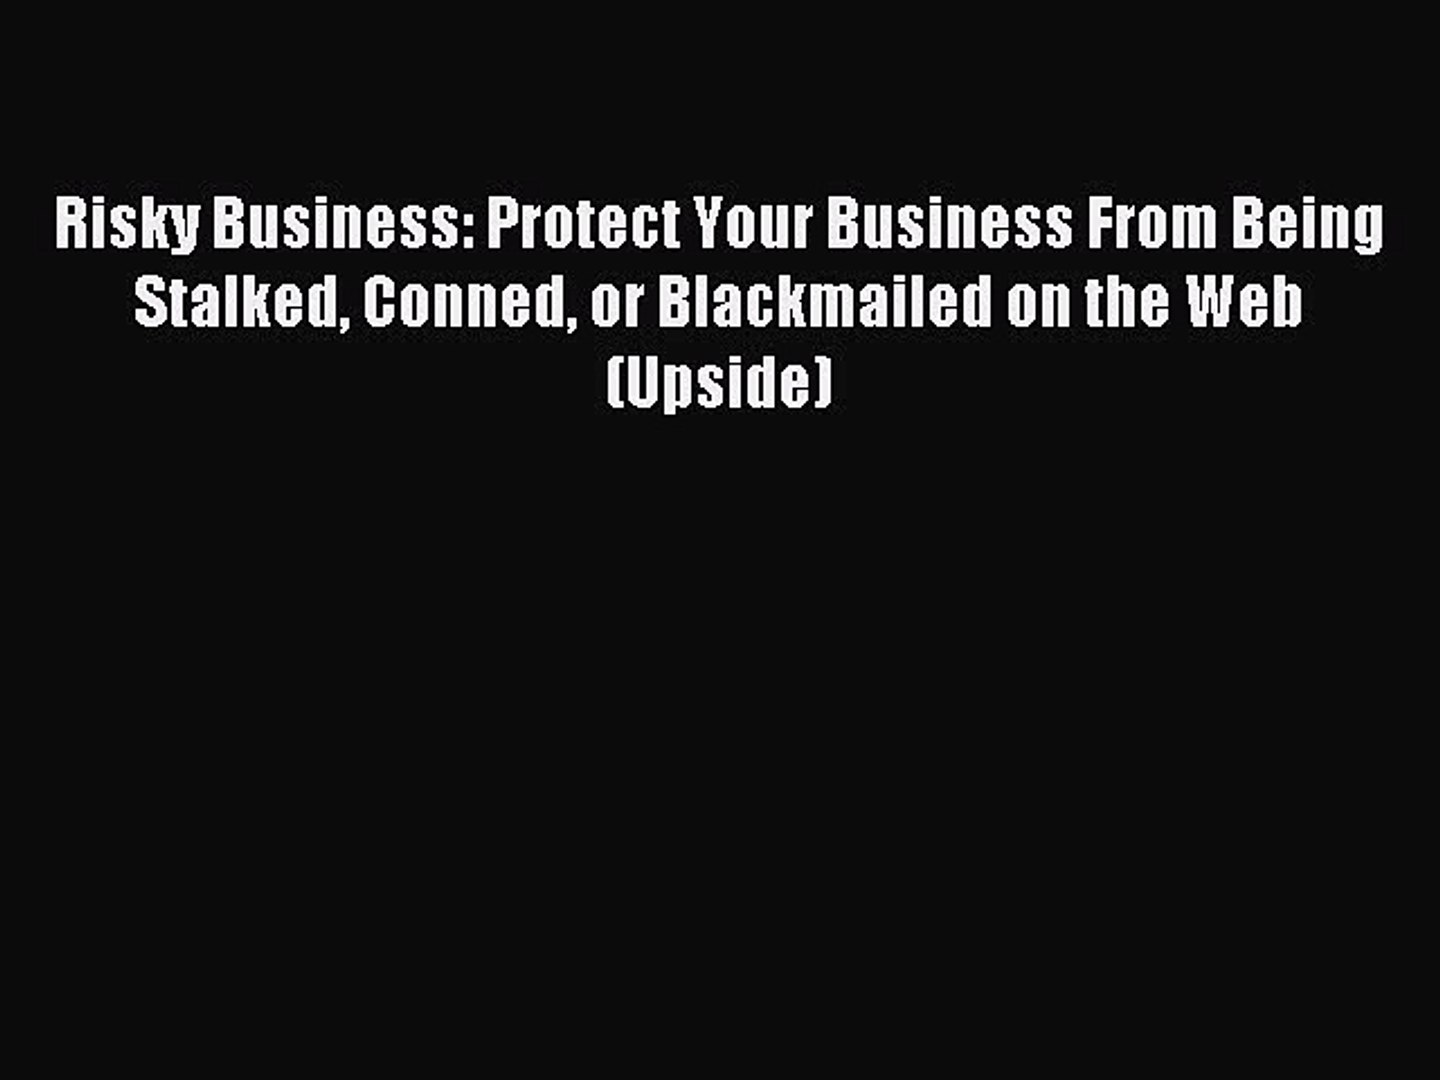 Read Risky Business: Protect Your Business From Being Stalked Conned or Blackmailed on the